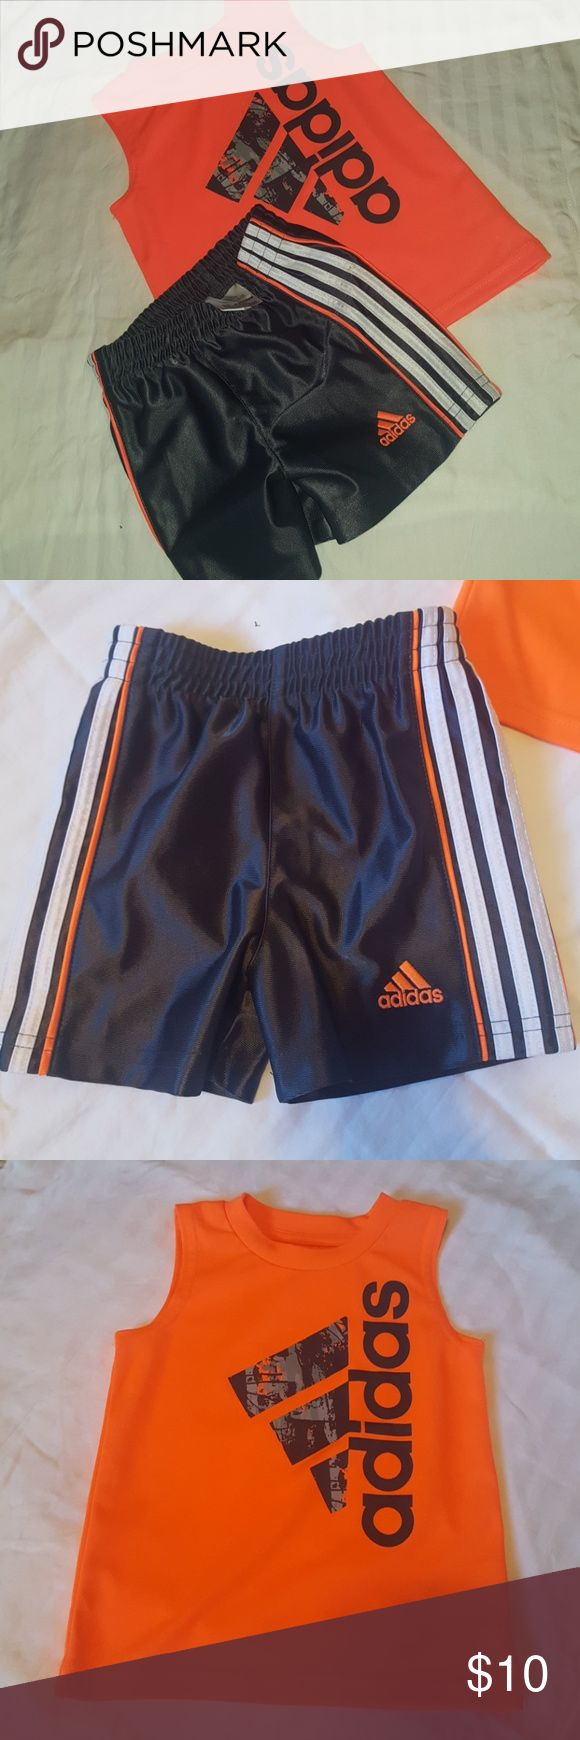 Adidas baby Blaze Orange and gray shorts outfit. I bought this last fall and my son was too big for it by the time hot weather came to Minnesota.  This outfit has zero flaws so it is basically new without tags. adidas Matching Sets